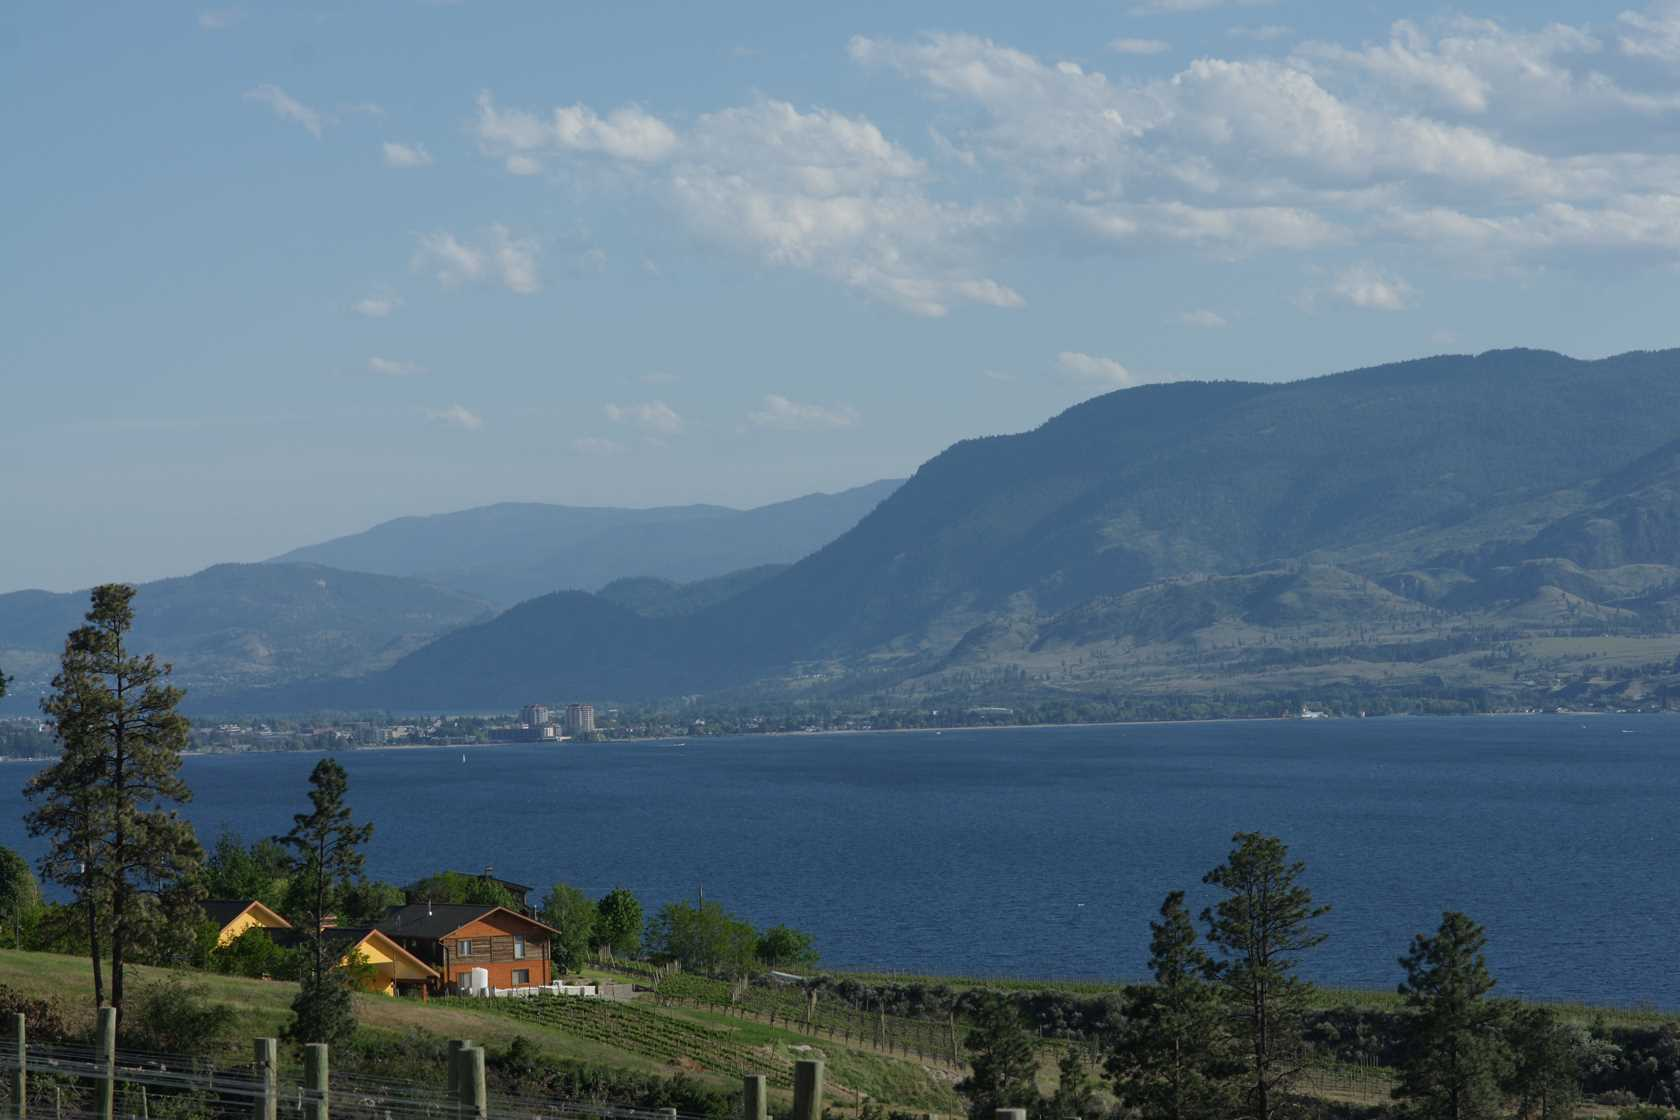 World Famous Wineries and Lakes